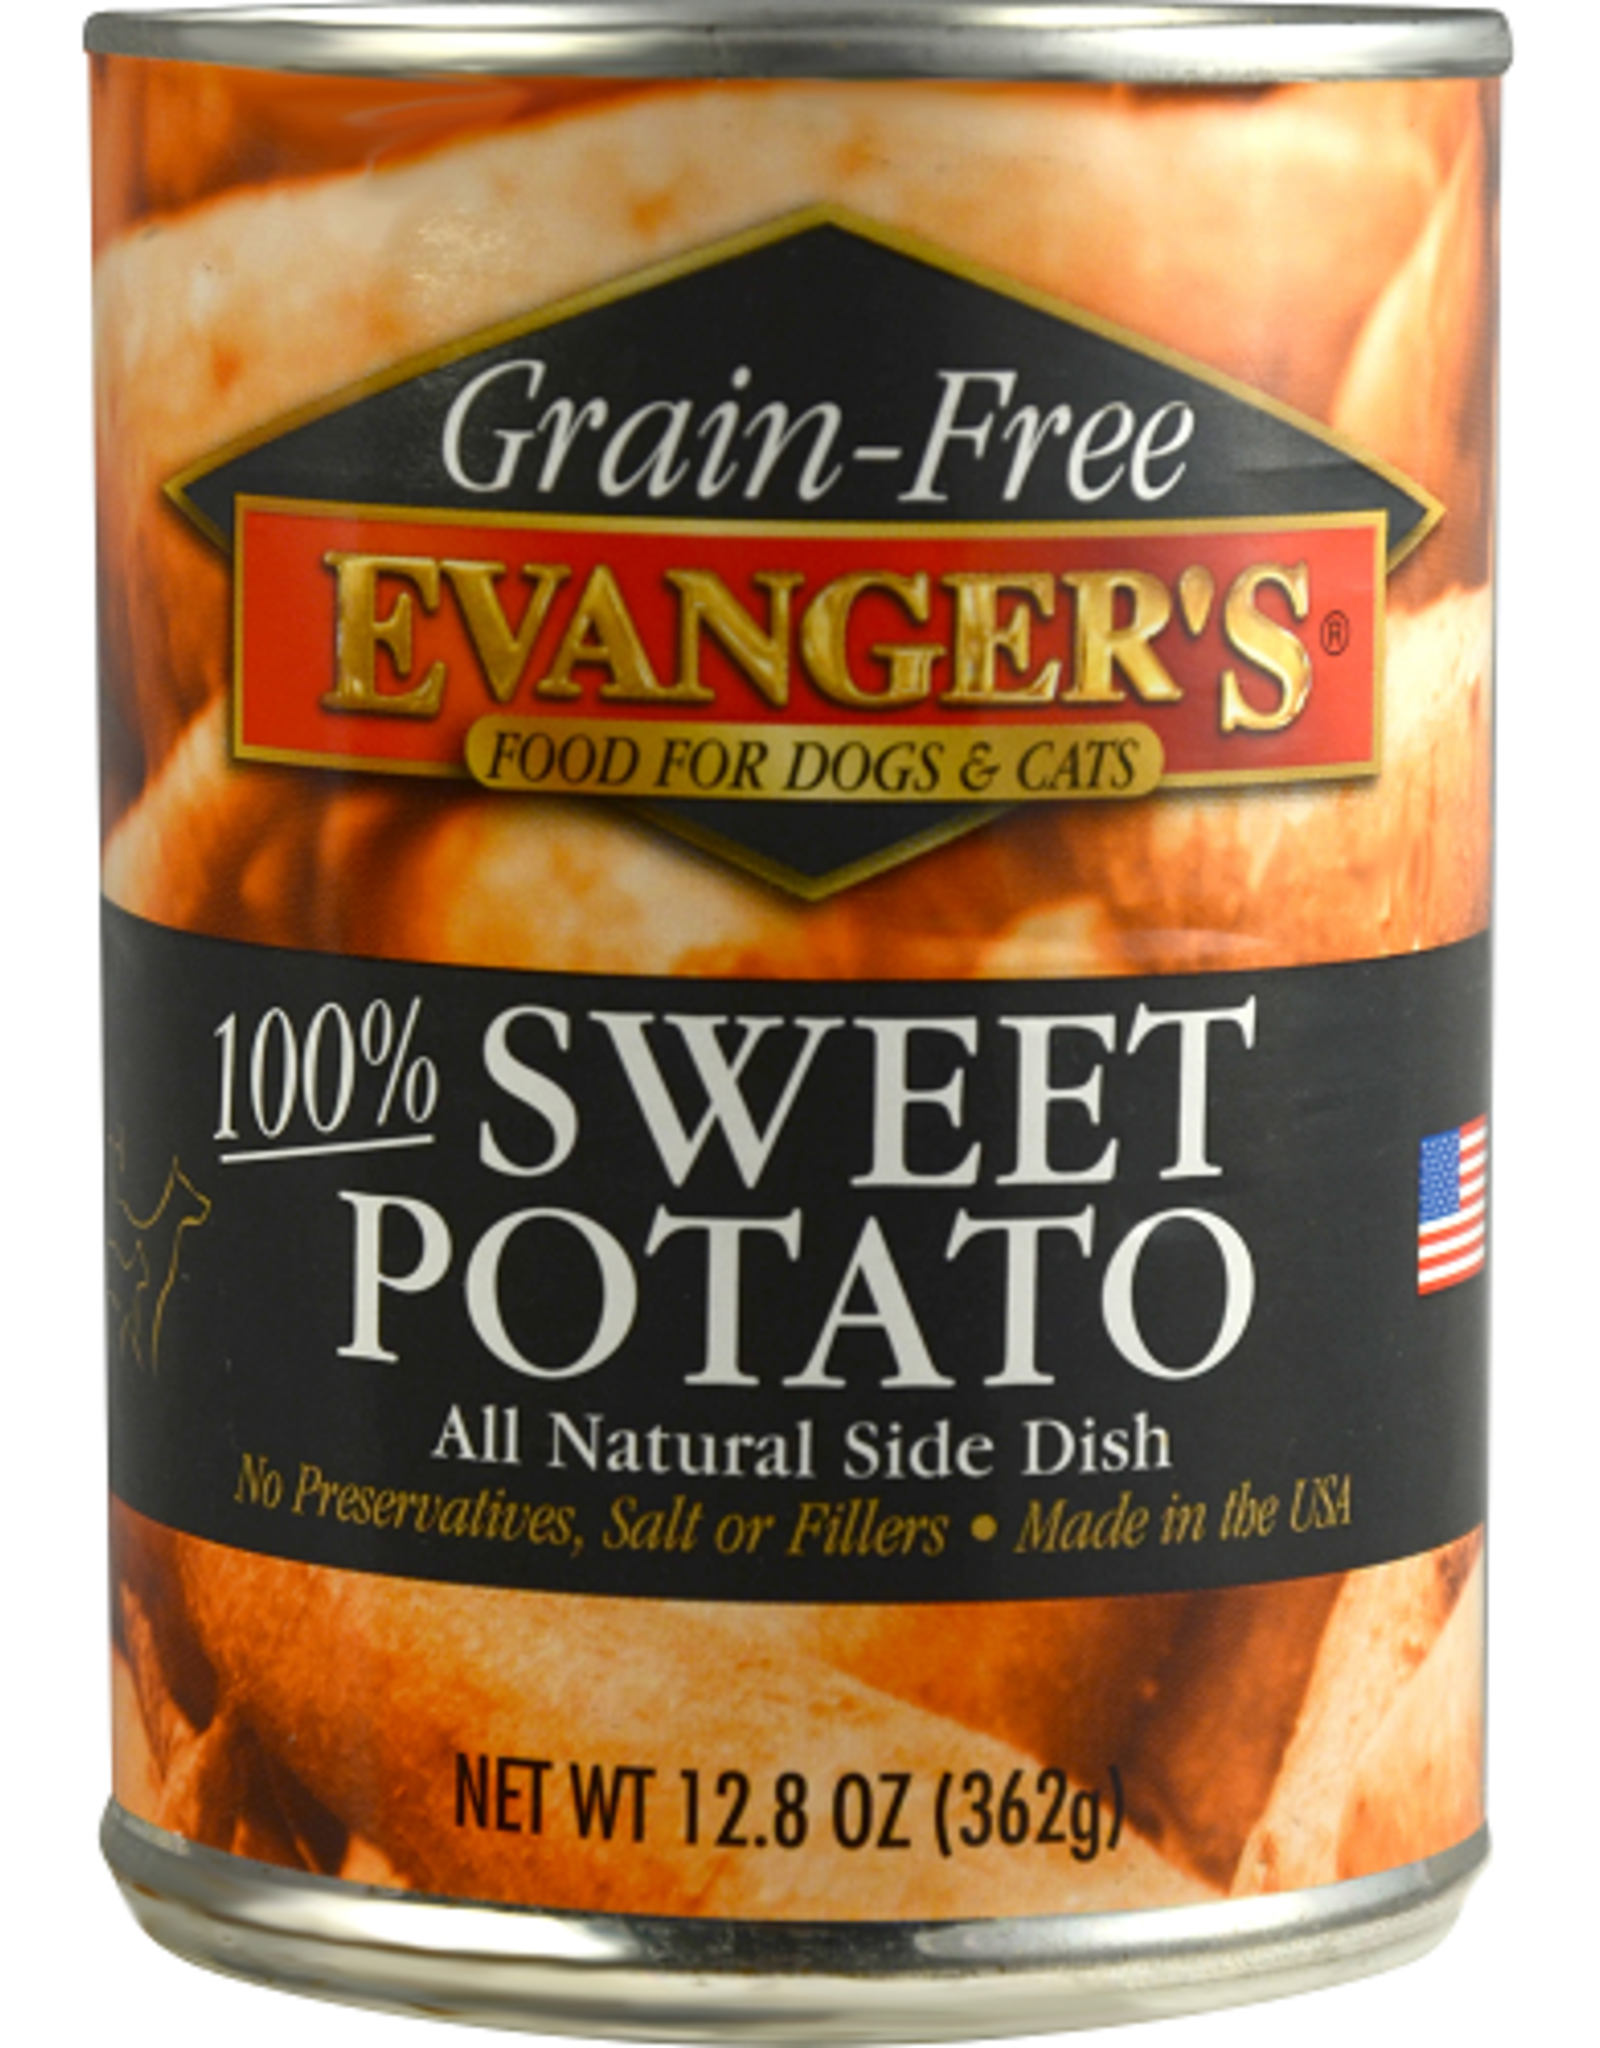 EVANGER'S EVANGERS GRAIN FREE SWEET POTATO 6OZ CAN